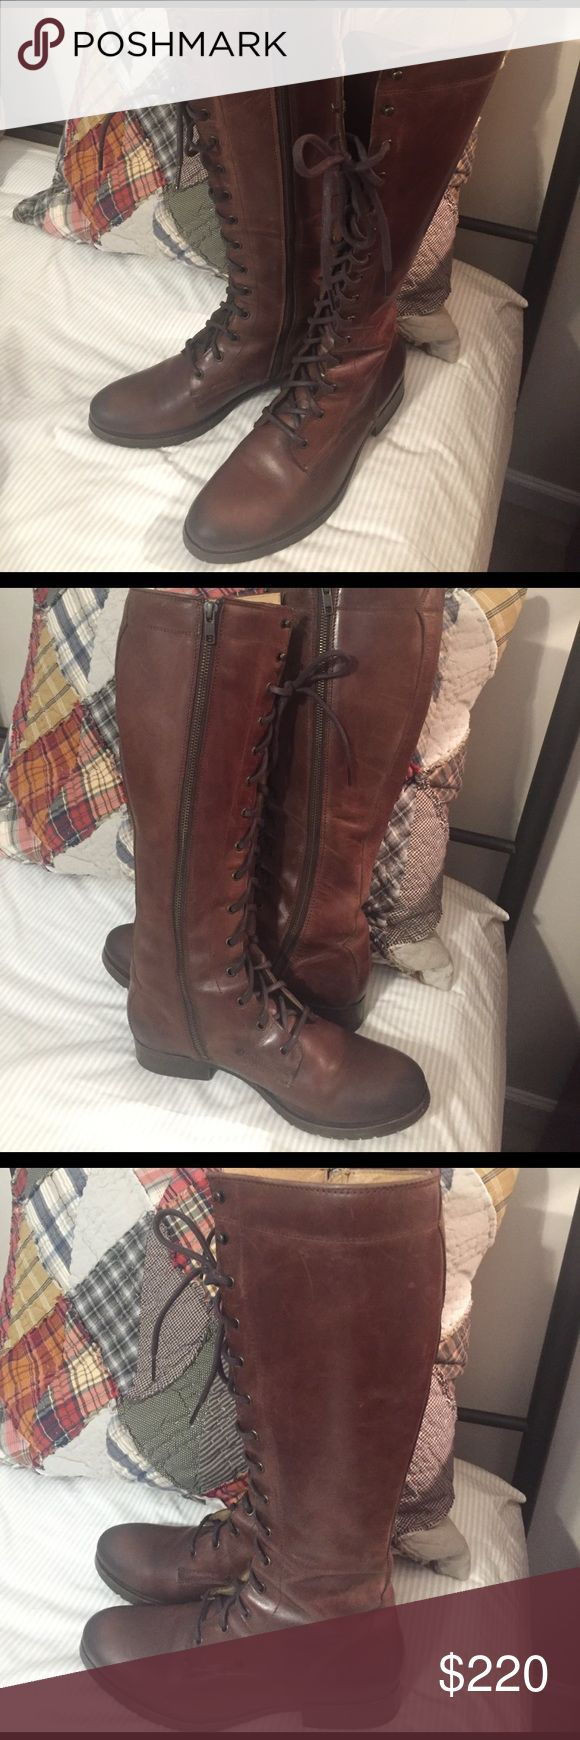 1000 Ideas About Frye Melissa Boots On Pinterest Brown